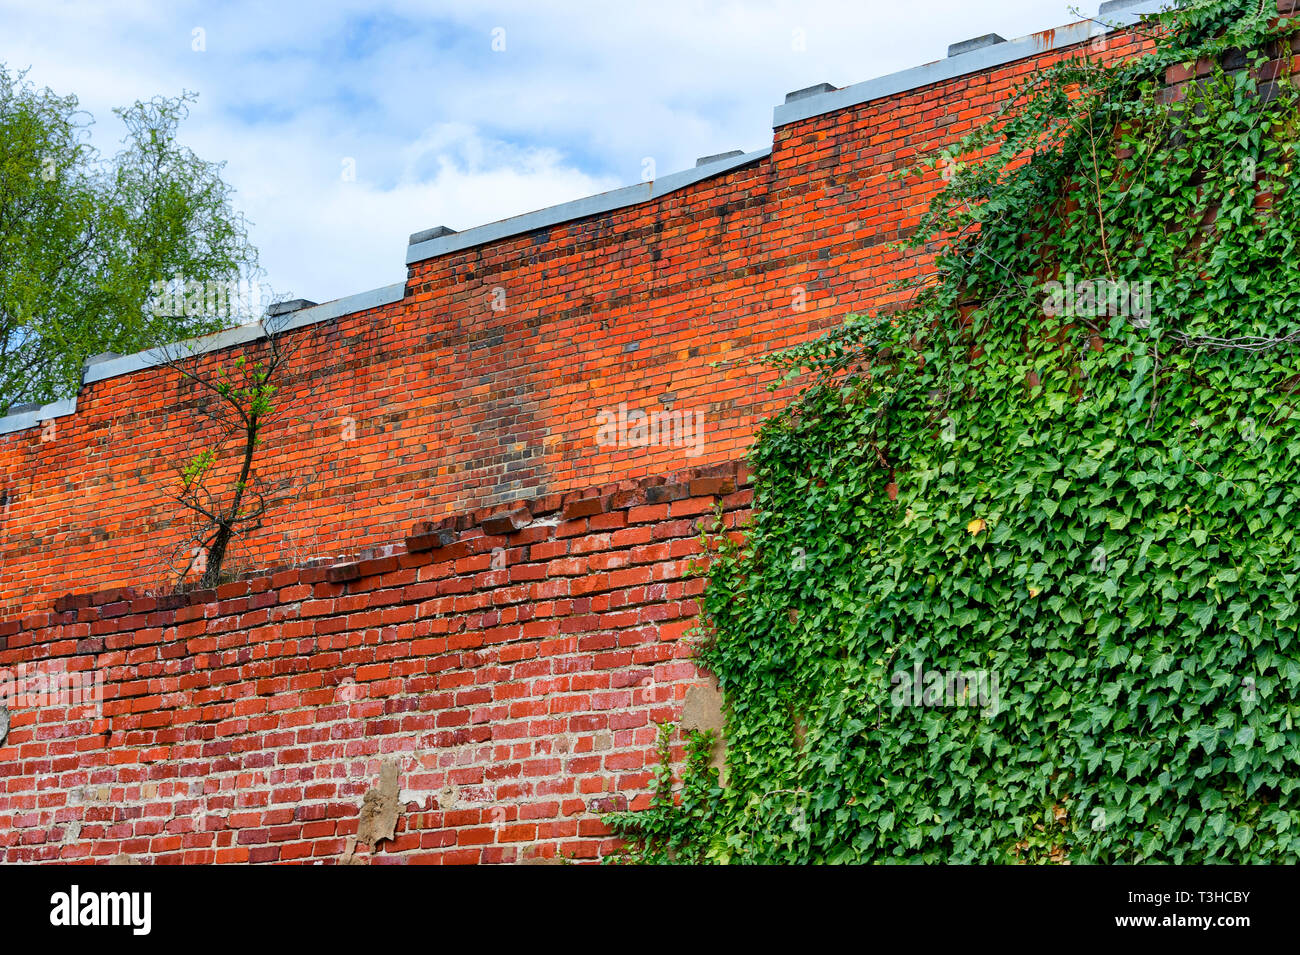 Exterior Brick wall with green ivy growing on it. - Stock Image